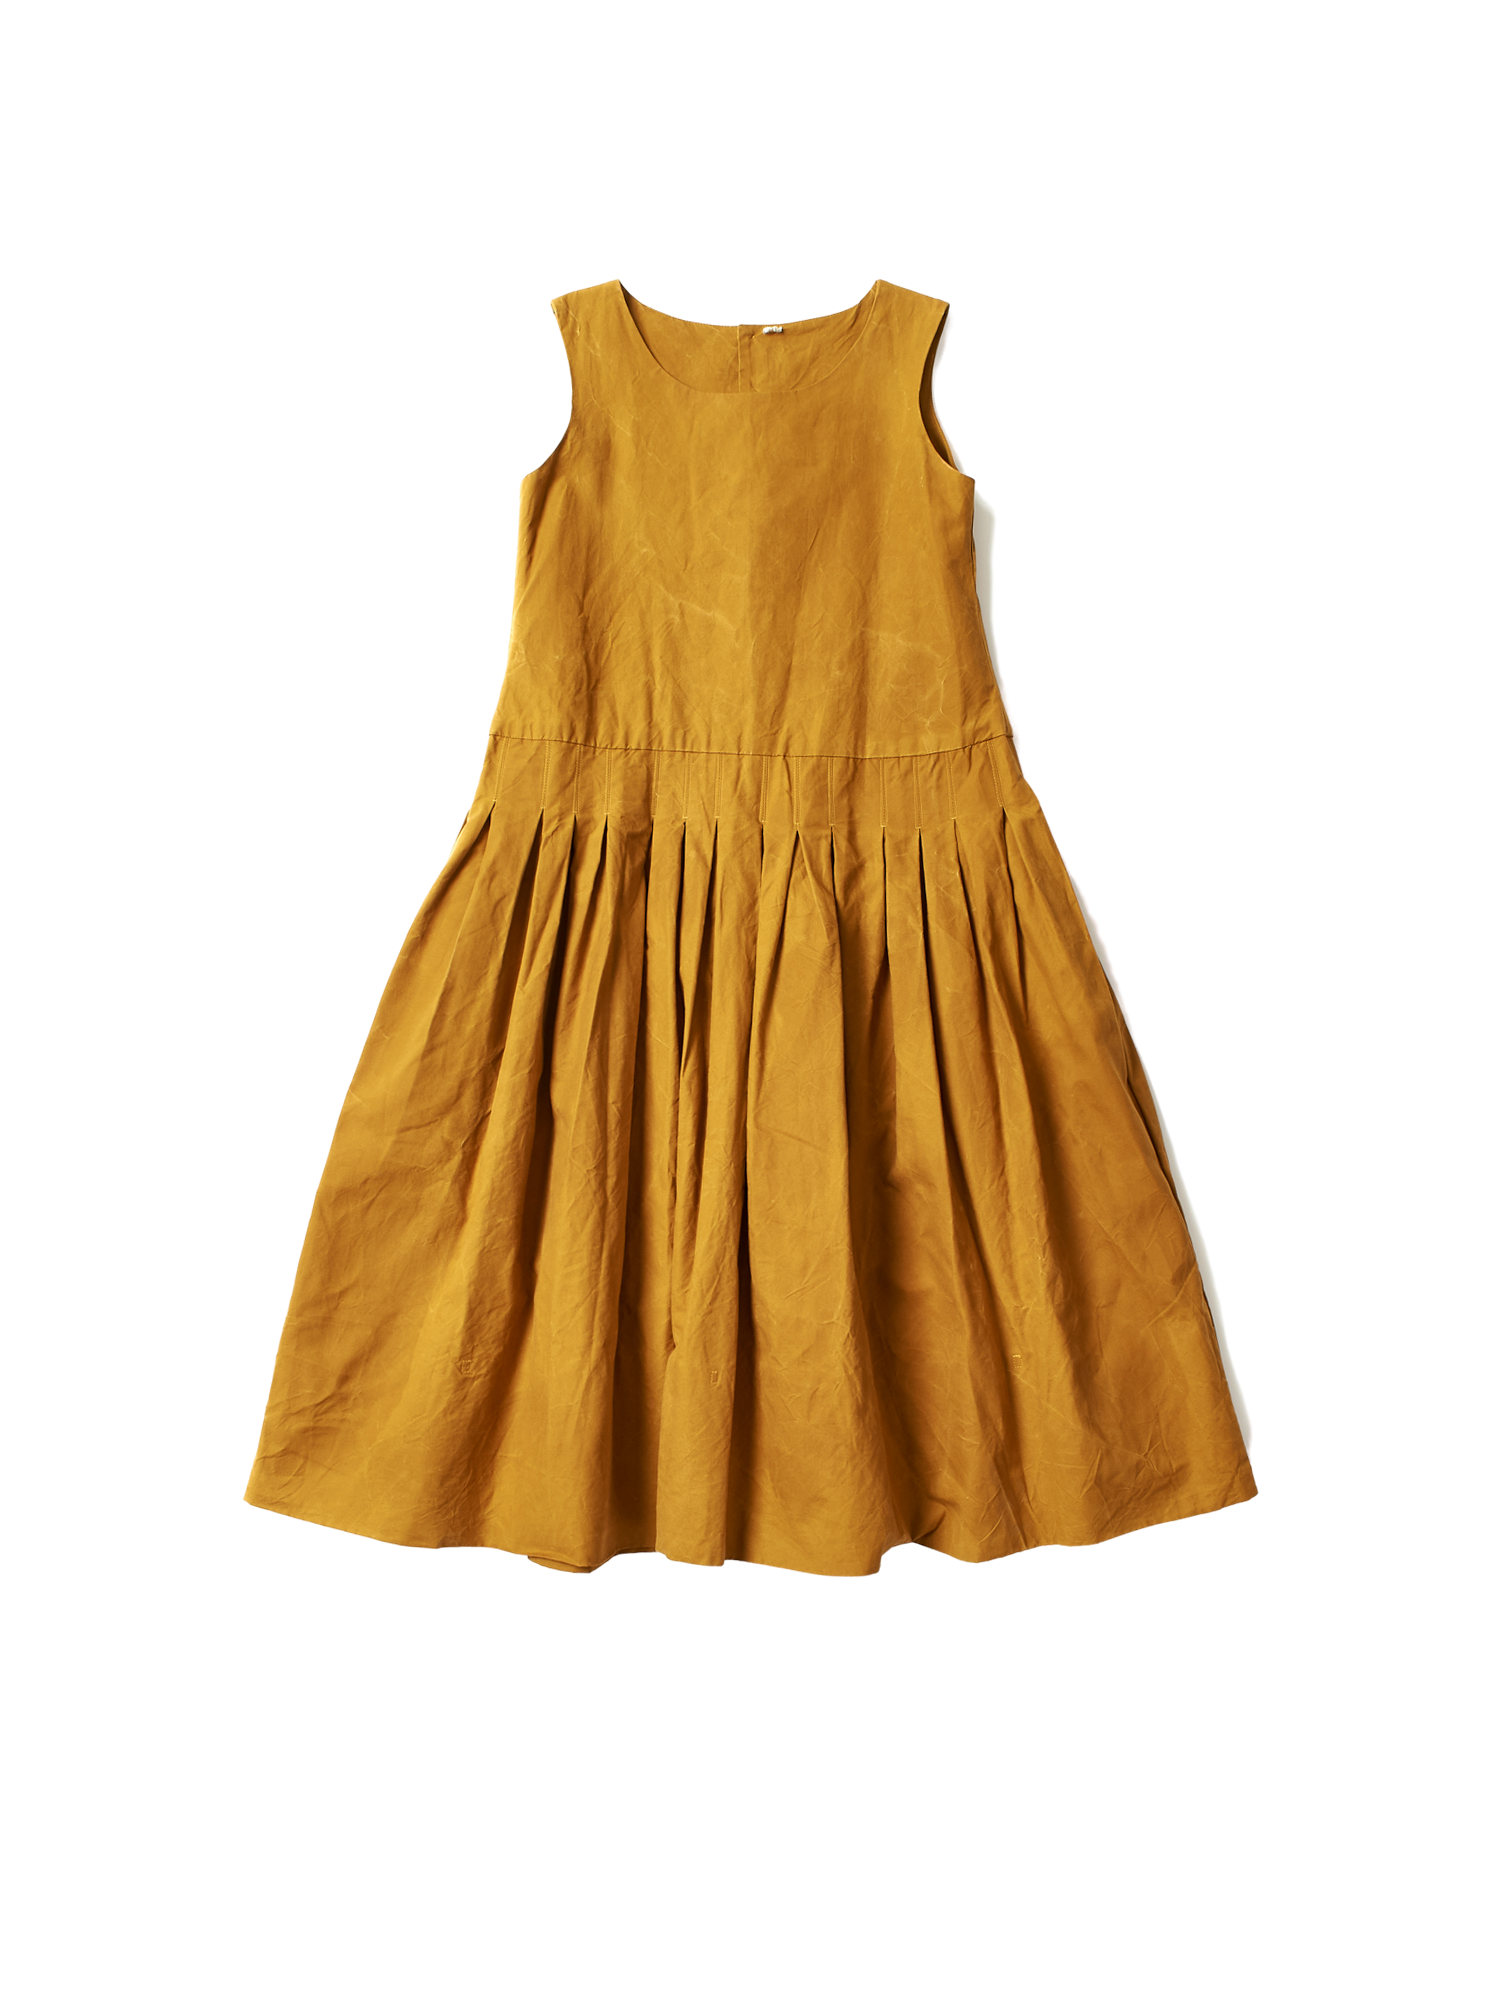 mustard yellow cotton drop waist t coco dress with button down back